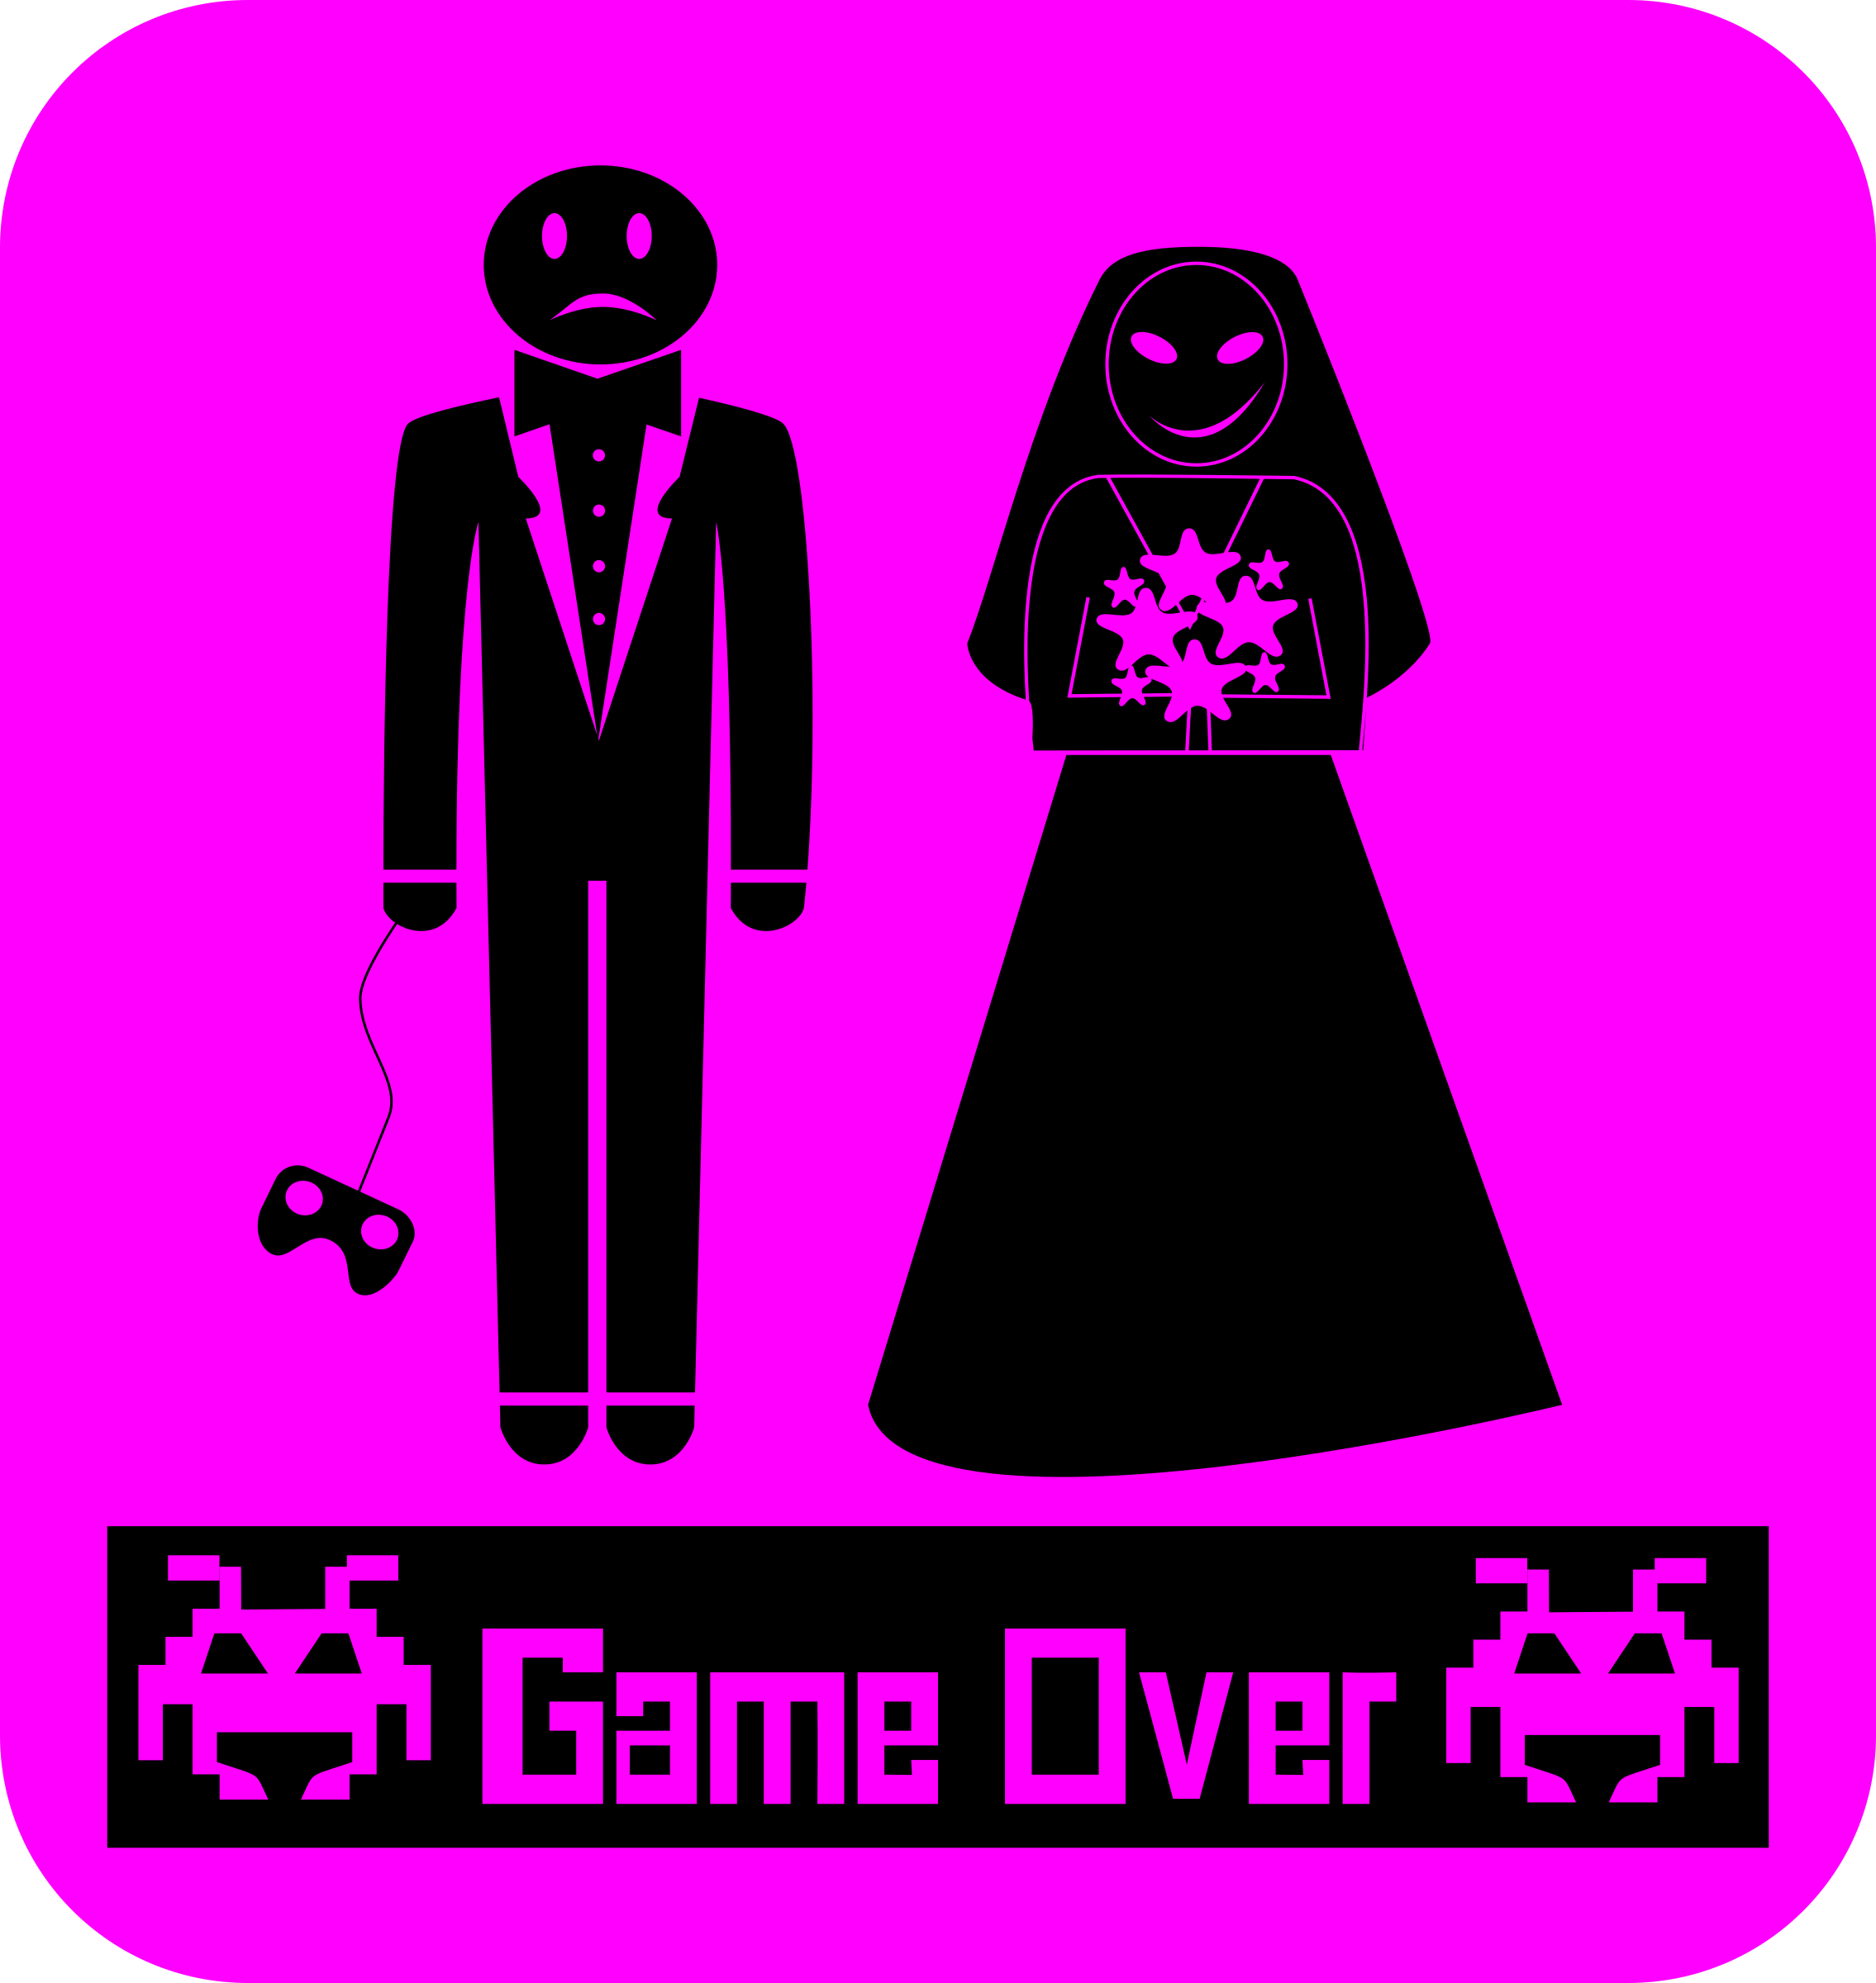 GameOverBoda by aguasas